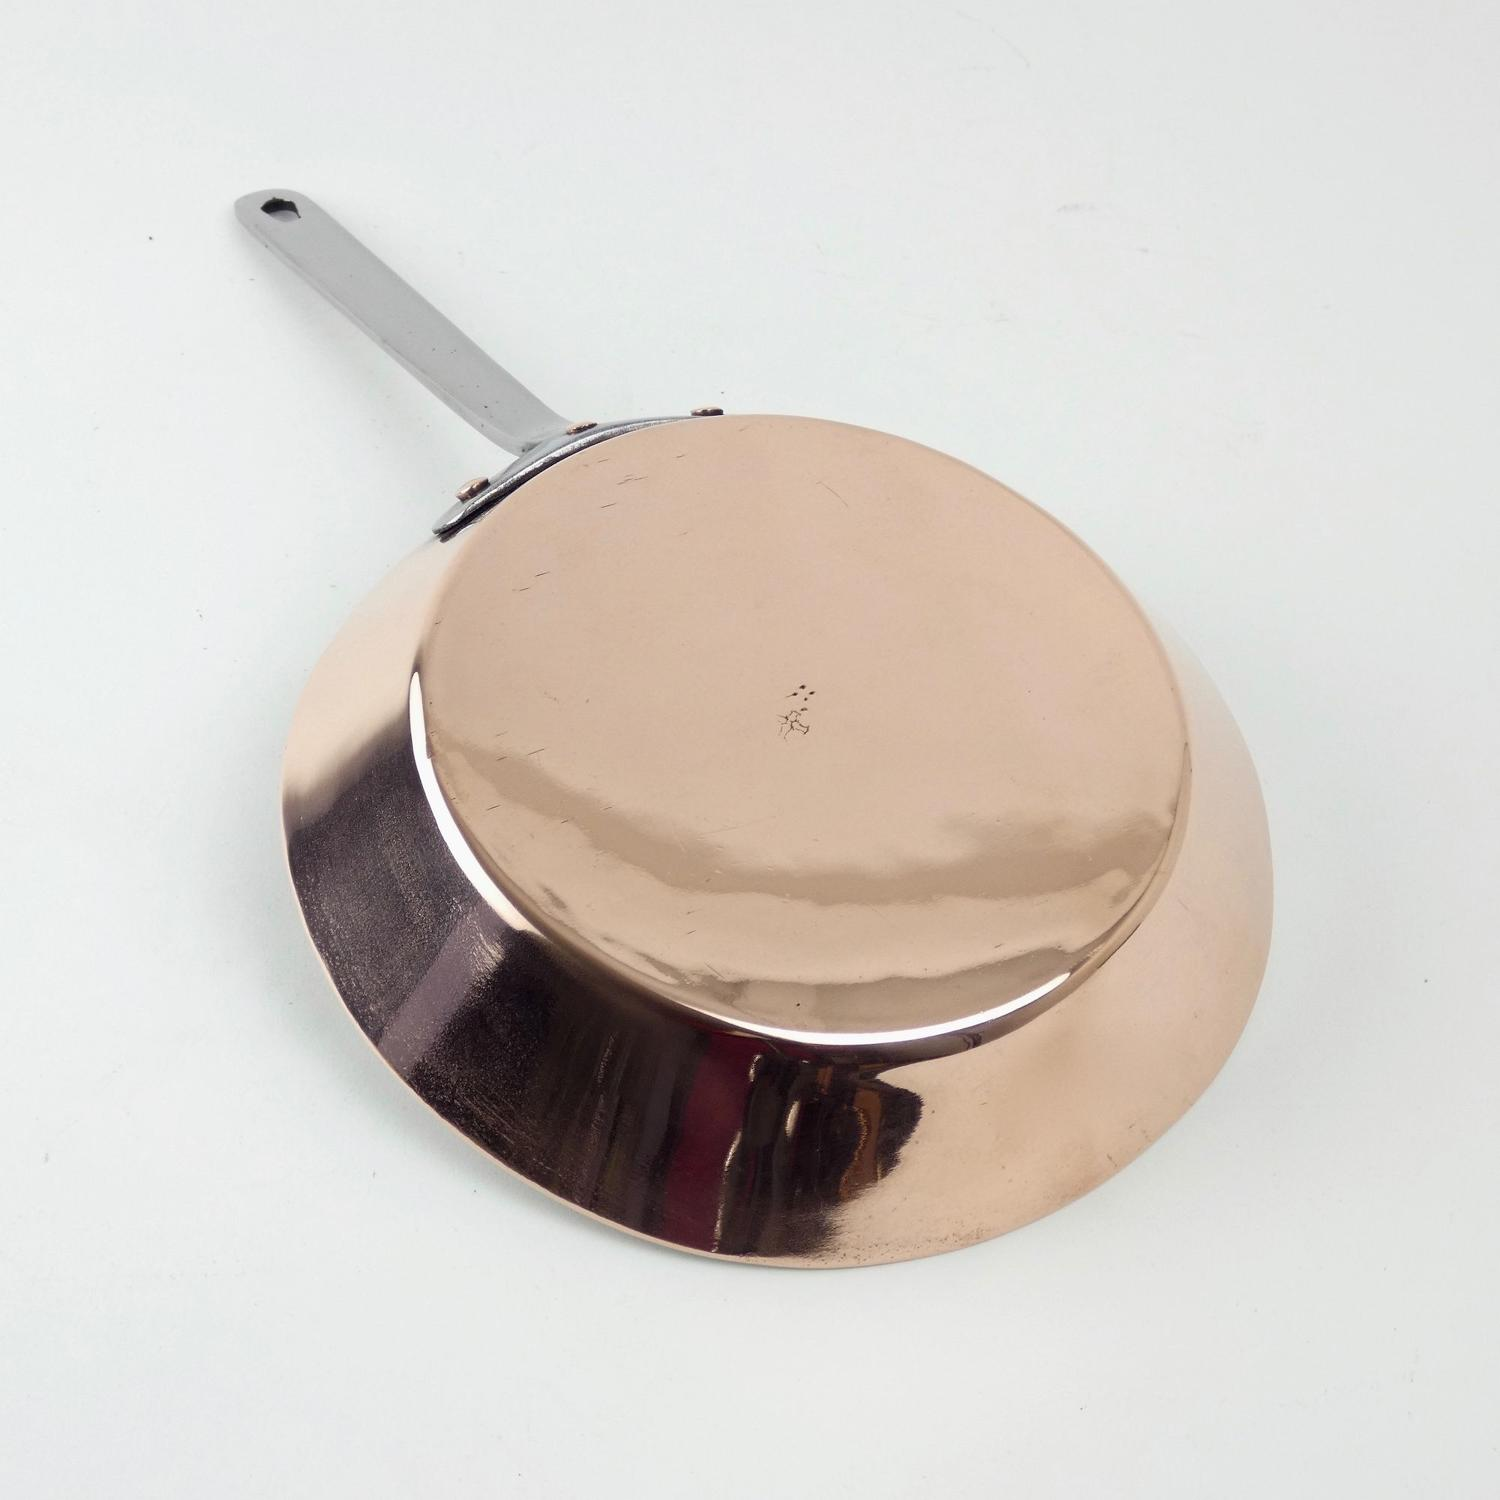 Small, English omelette pan